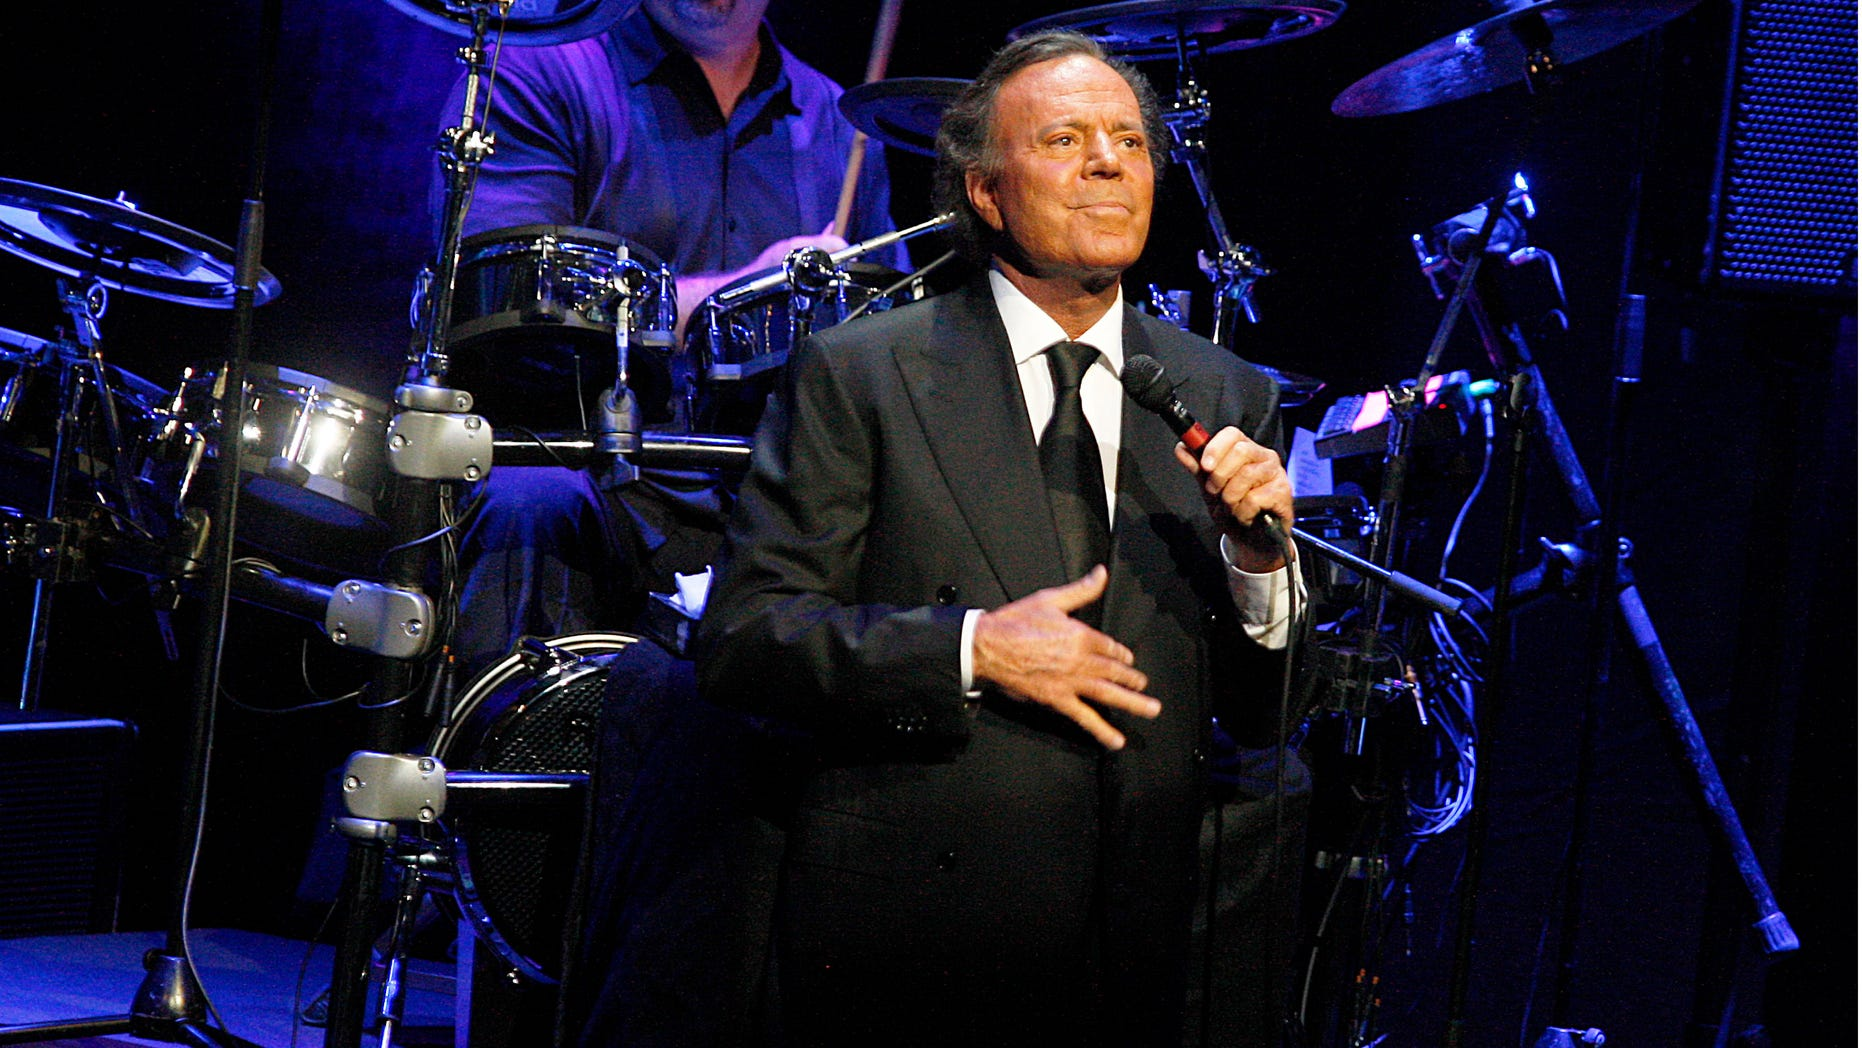 BARCELONA, SPAIN - JULY 04:  Julio Iglesias performs 'Julio Iglesias In Concert At Gran Teatre del Liceu' In Barcelona on July 4, 2012 in Barcelona, Spain.  (Photo by Miquel Benitez/Getty Images)